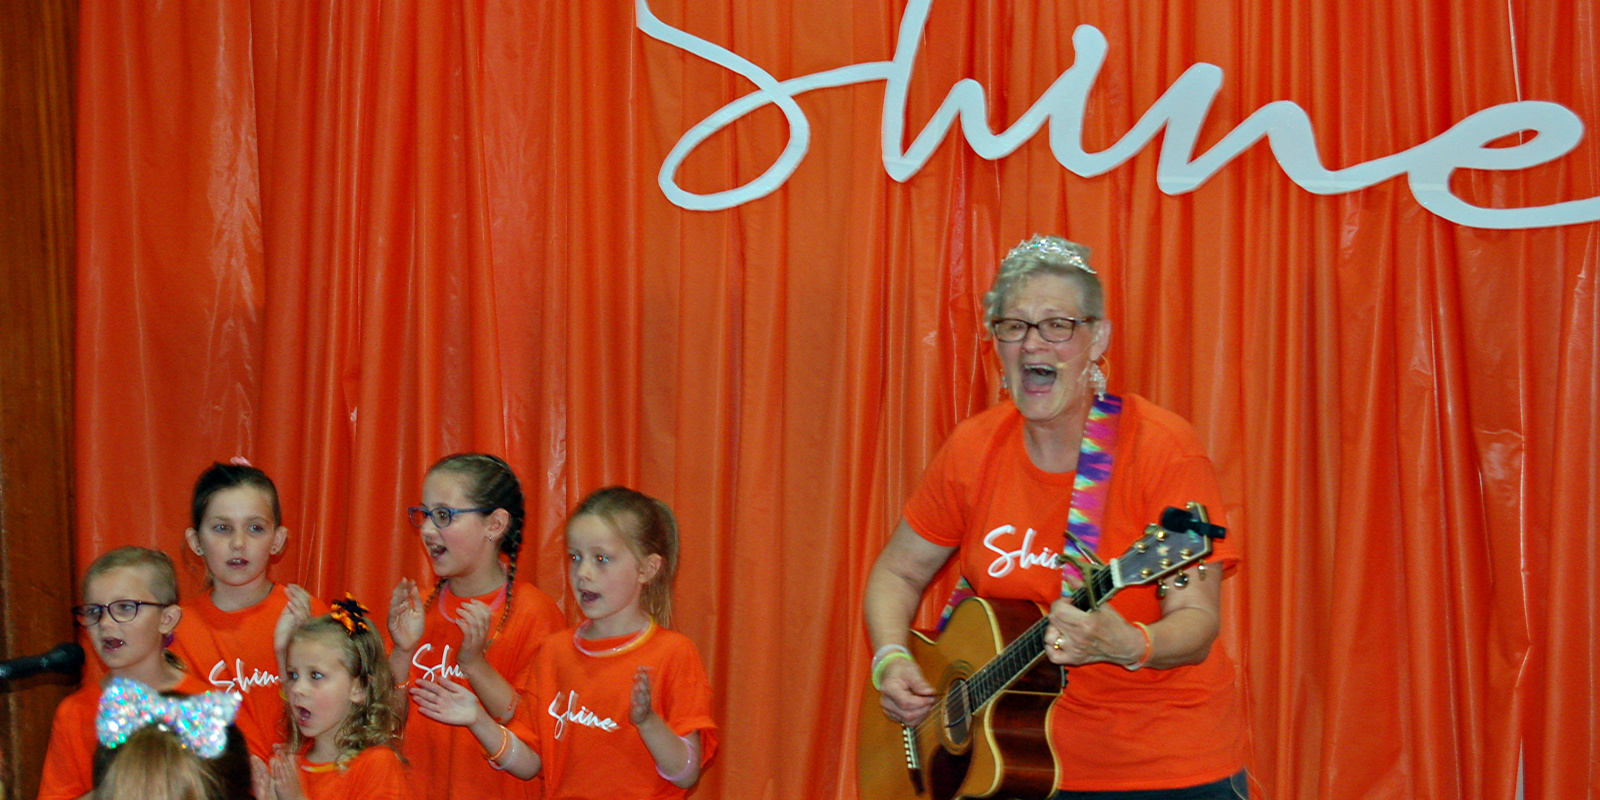 Sylvia Chave's New Album Encourages Kids to Shine